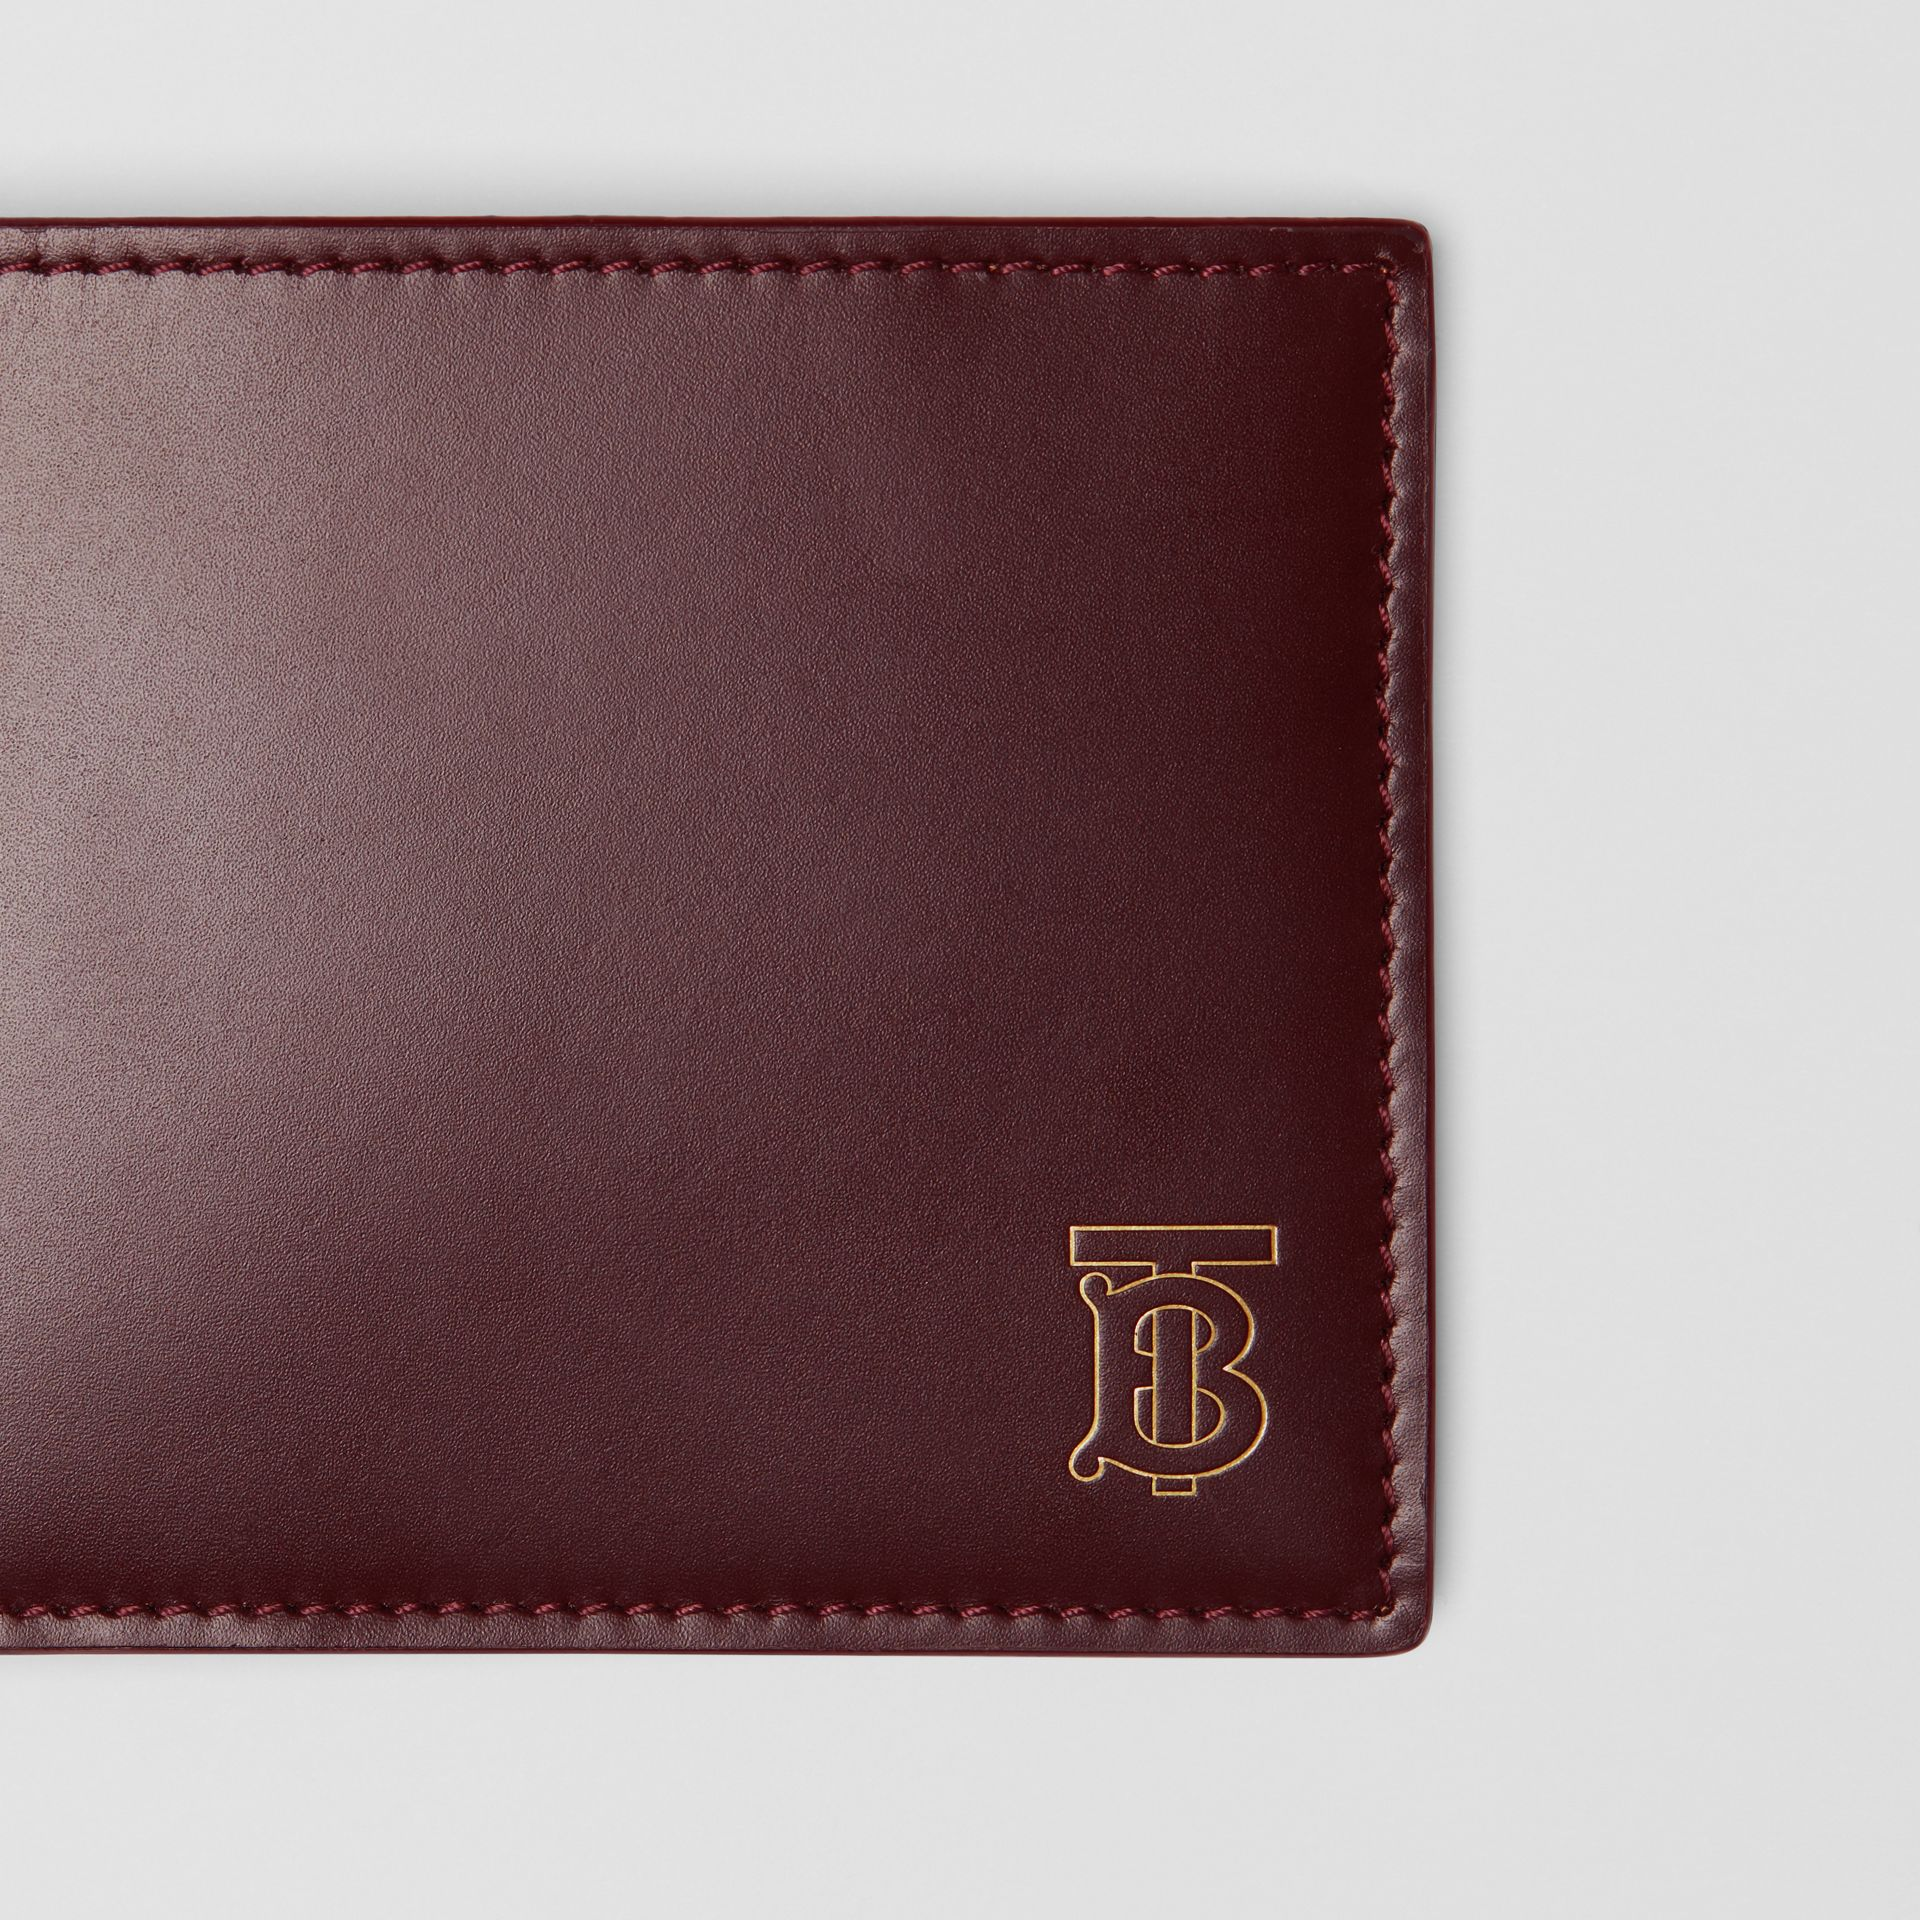 Monogram Motif Leather International Bifold Wallet in Oxblood - Men | Burberry - gallery image 1